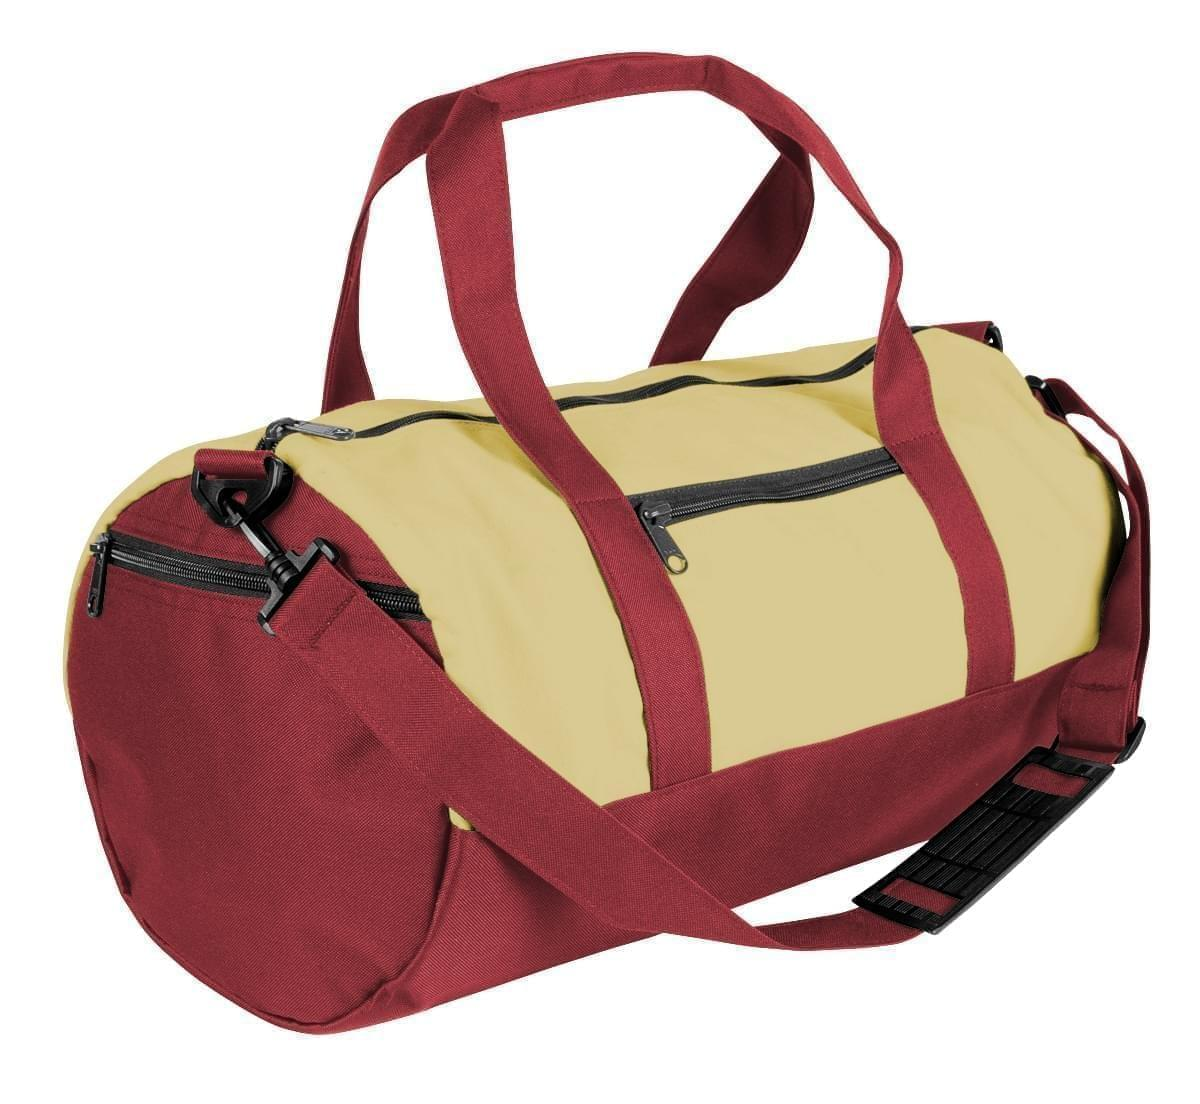 USA Made Heavy Canvas Athletic Barrel Bags, Natural-Burgundy, PMLXZ2AAVE